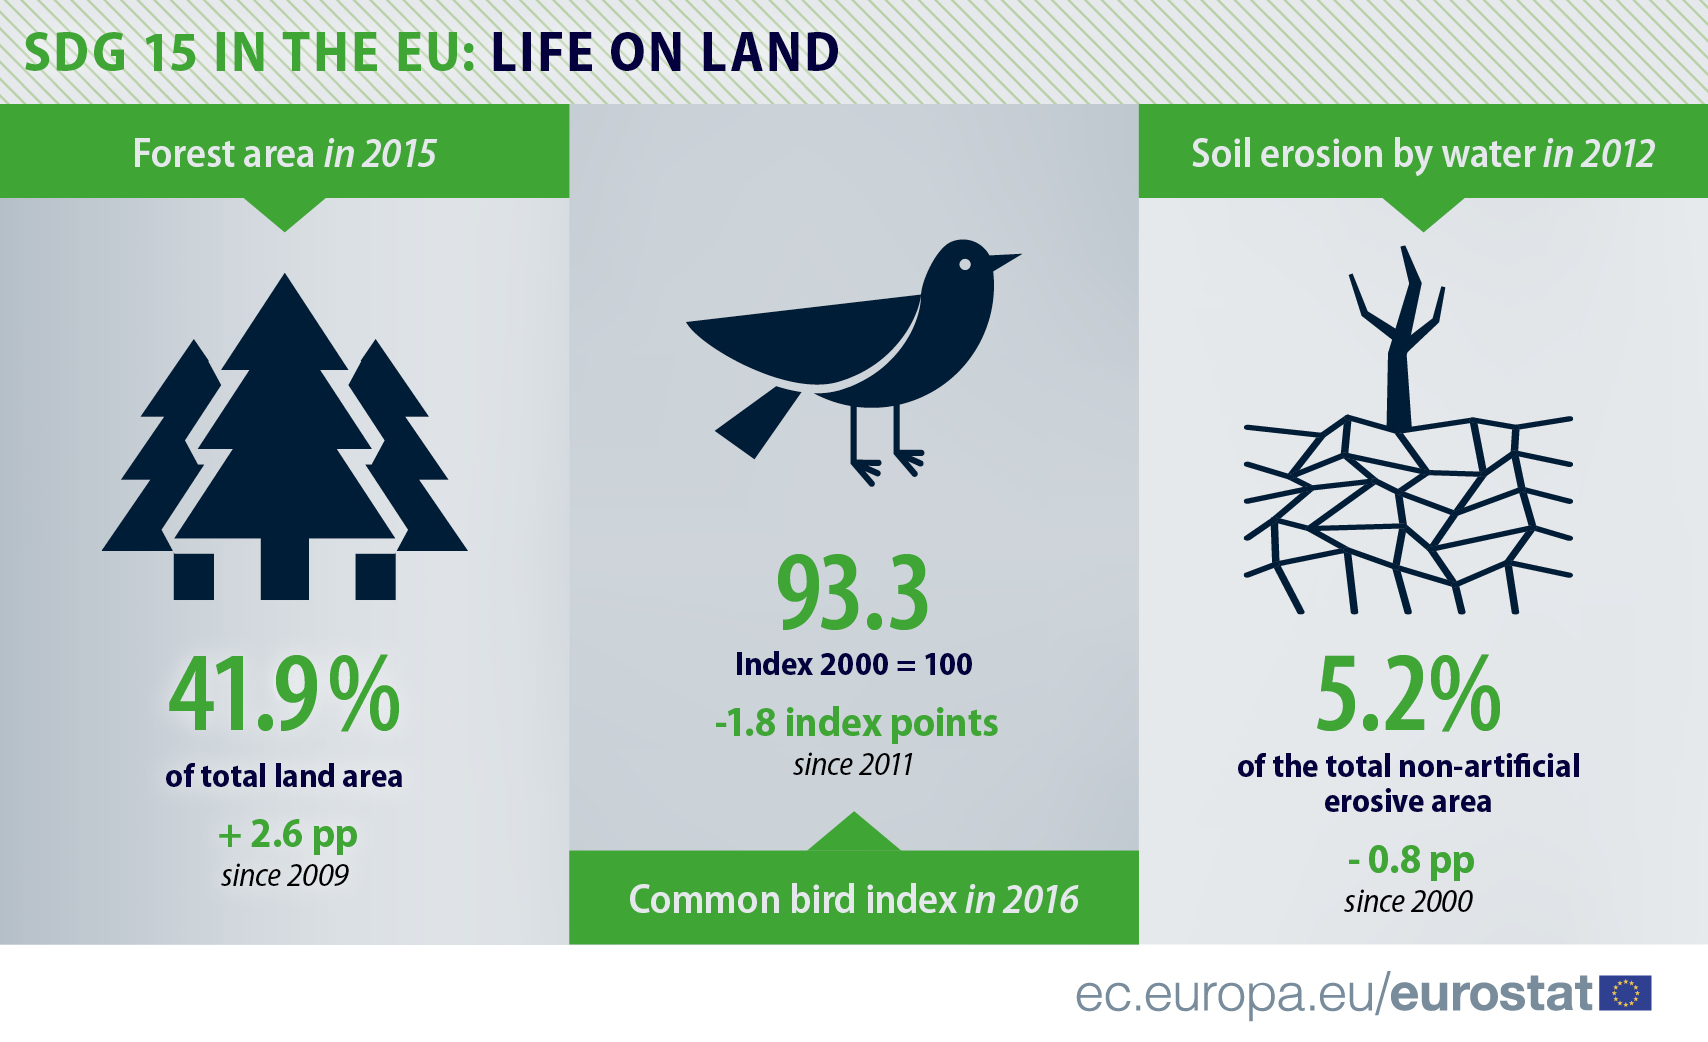 Infographic: SDGs 15 in the EU - Life on land